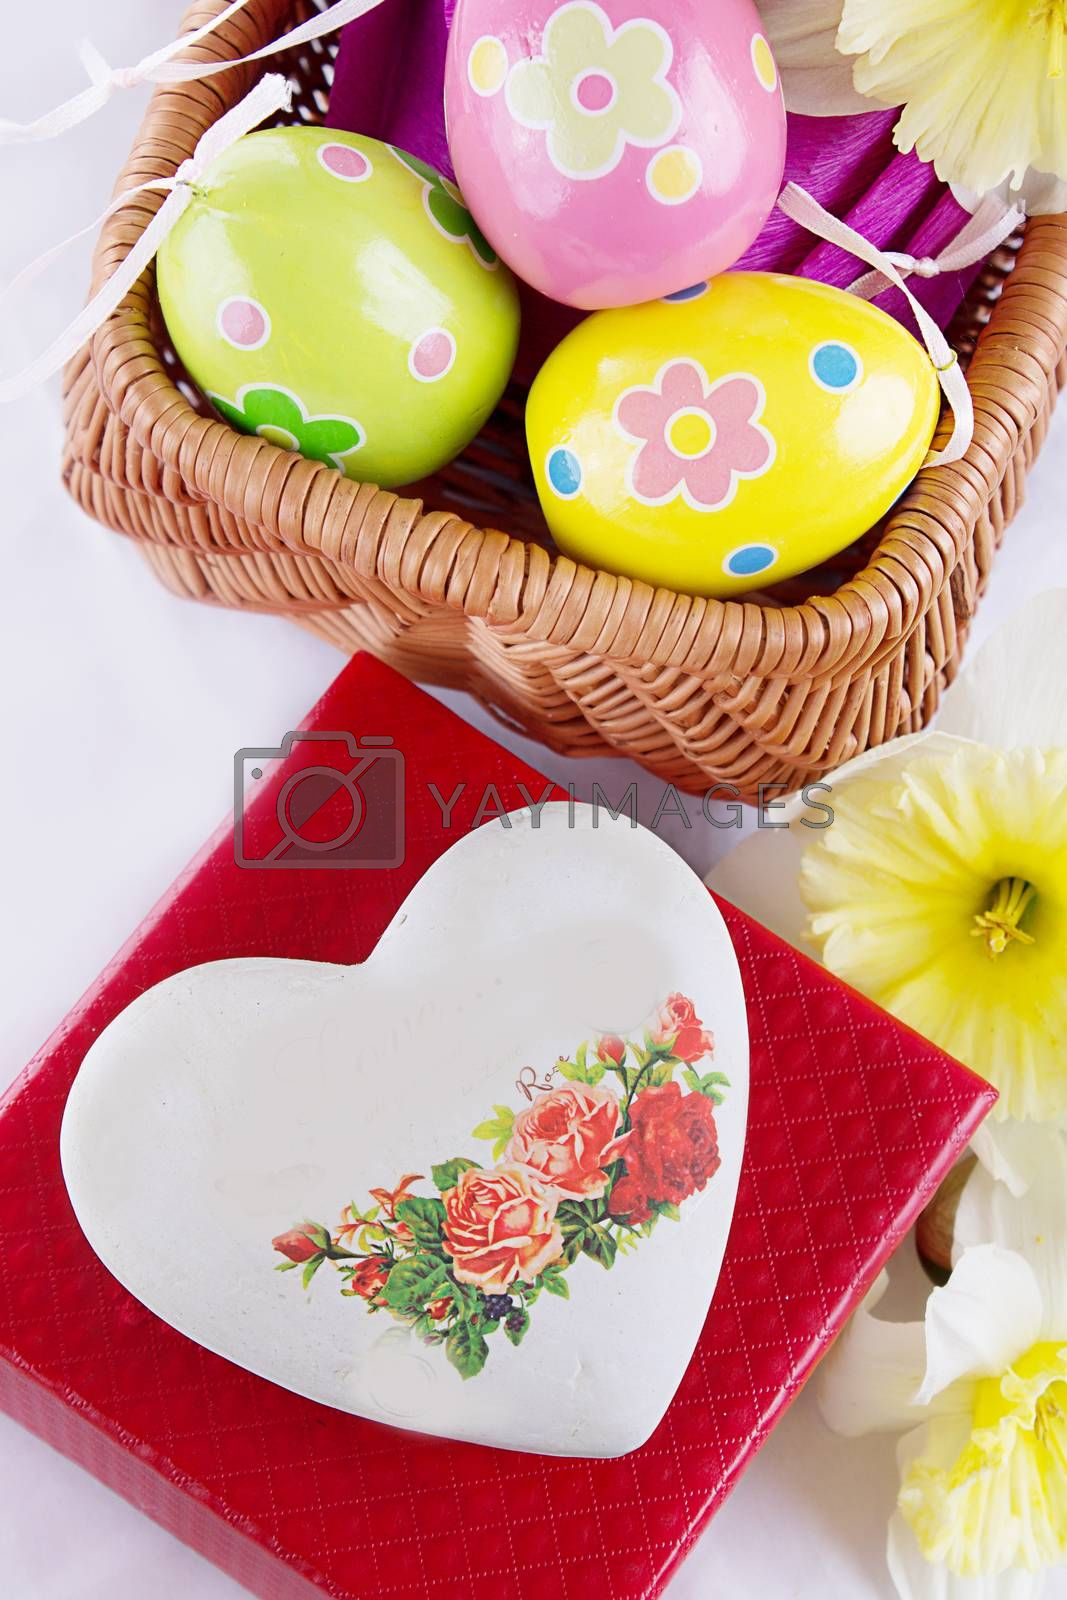 Royalty free image of Easter decoration with eggs, flowers and heart by Angel_a